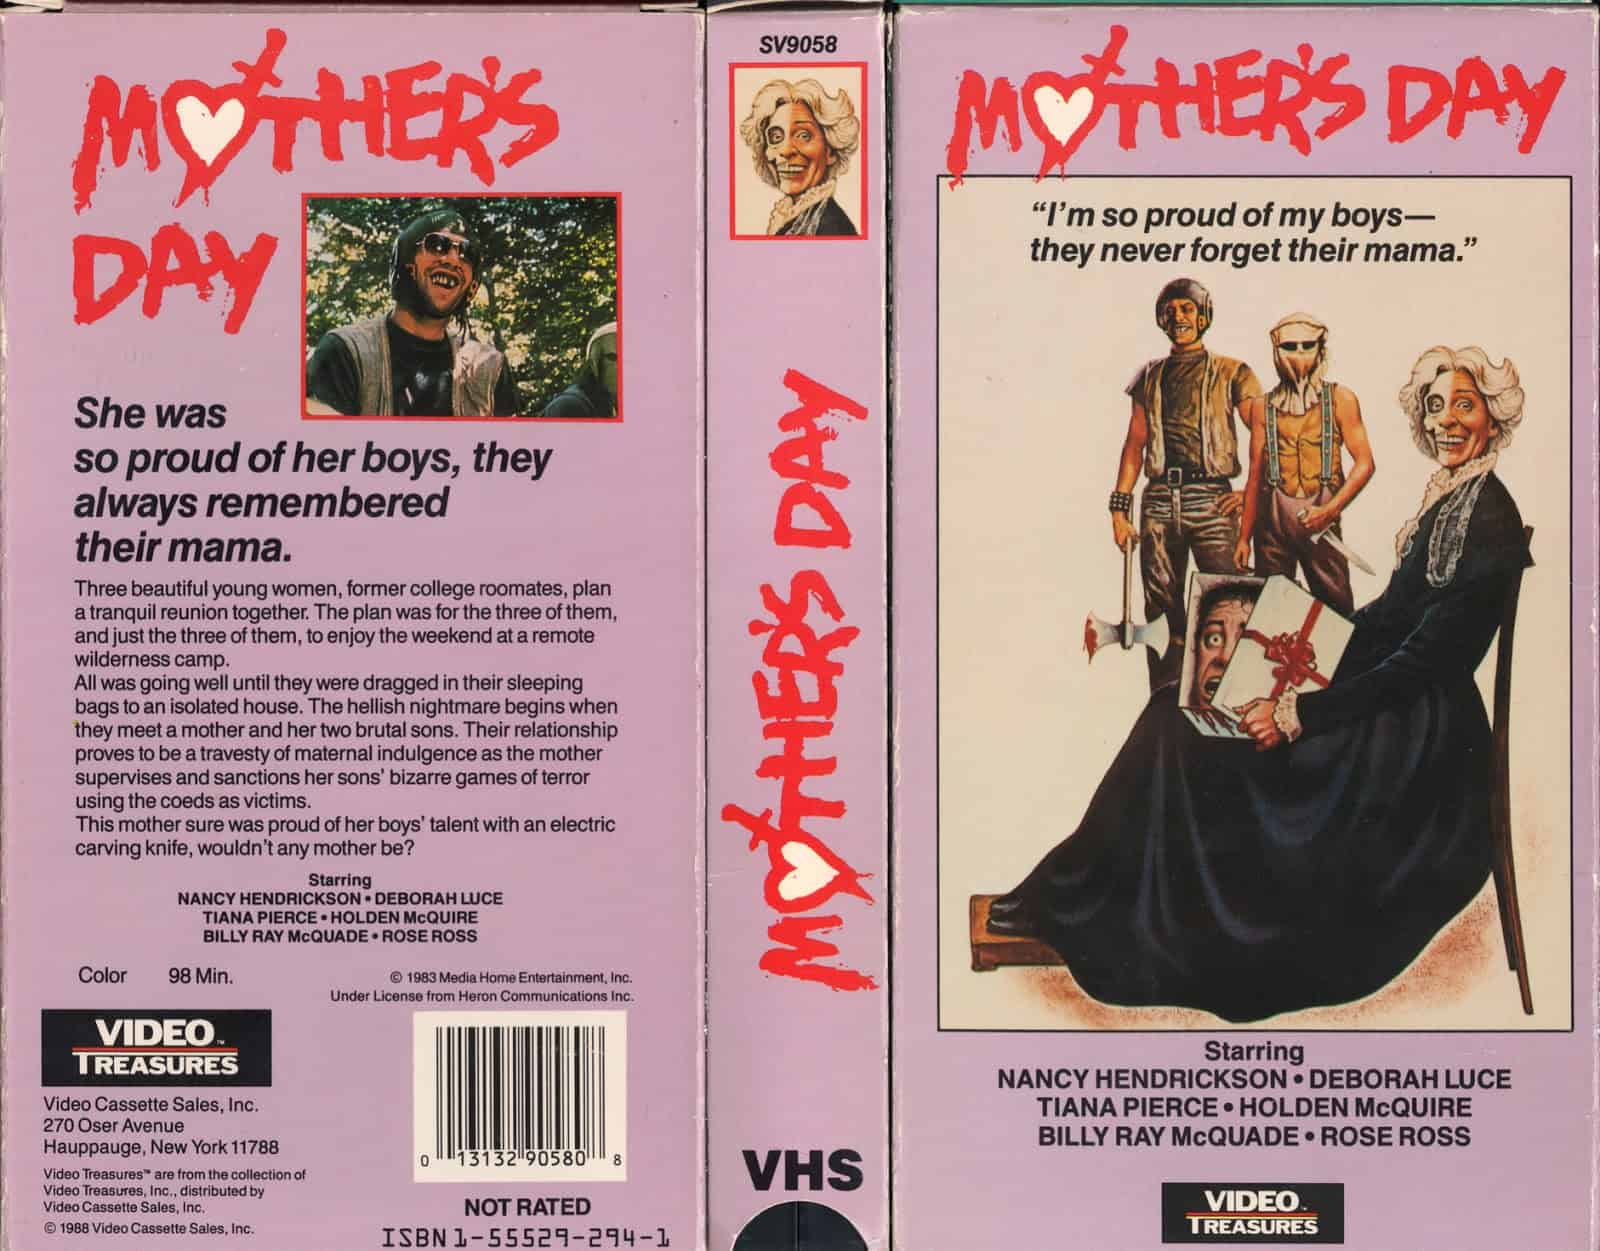 Movie Posters We Love: Mother's Day (1980)